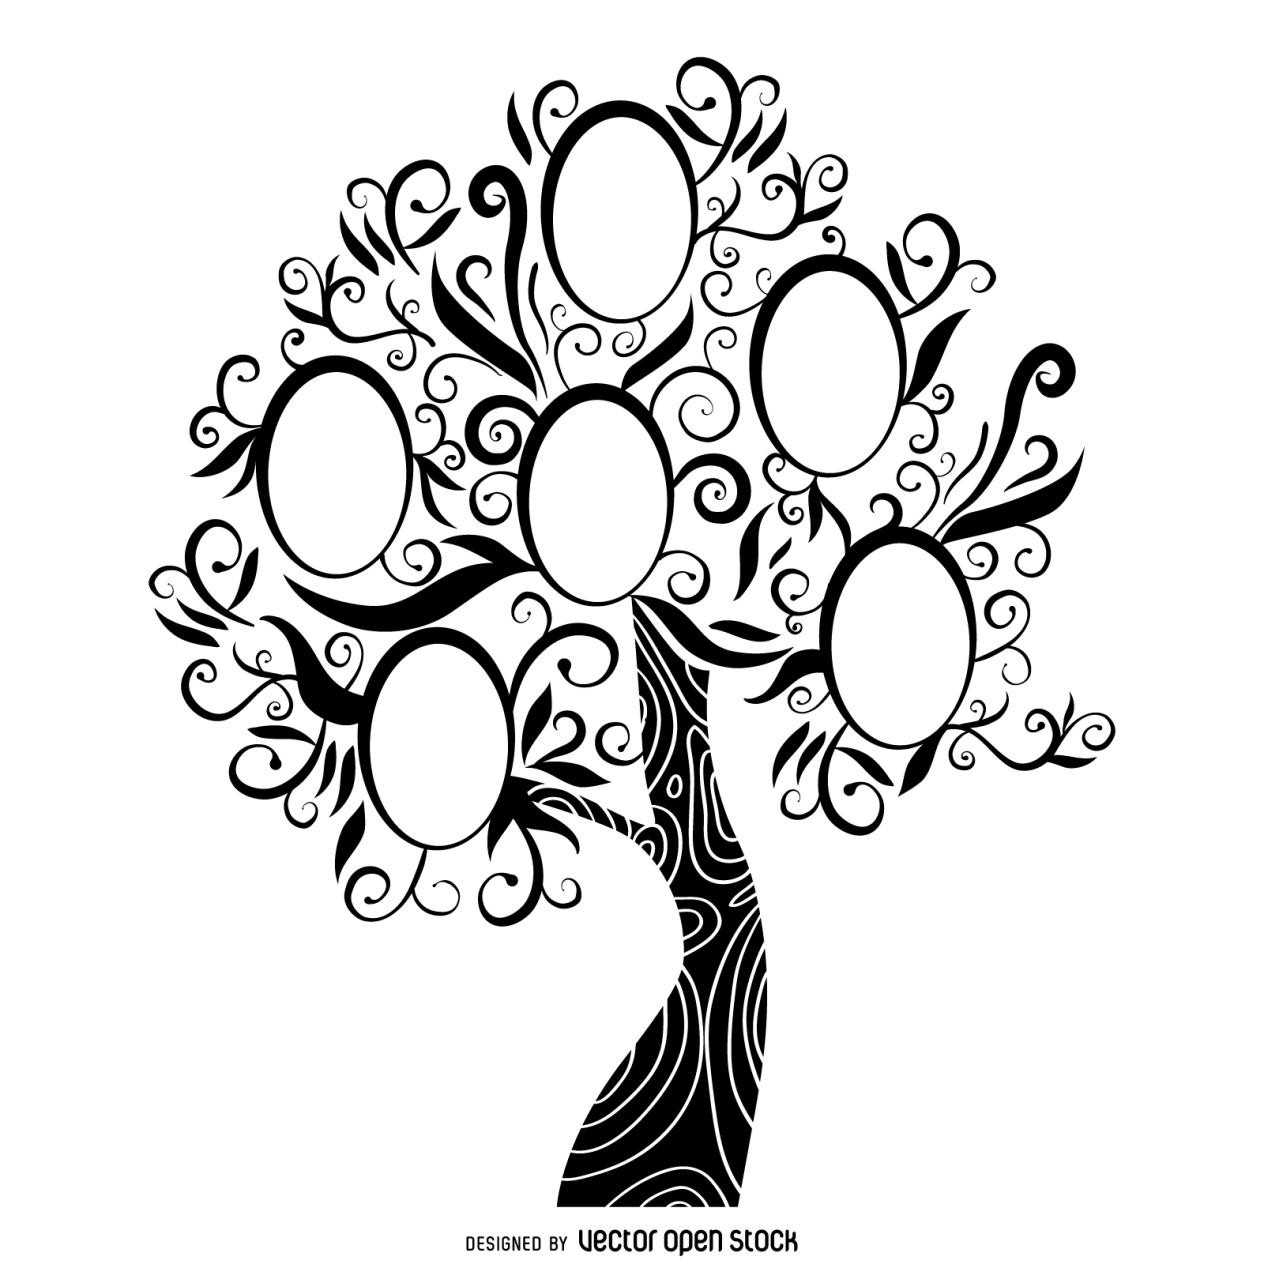 1264x1264 Decoration Drawing Family For Free Download